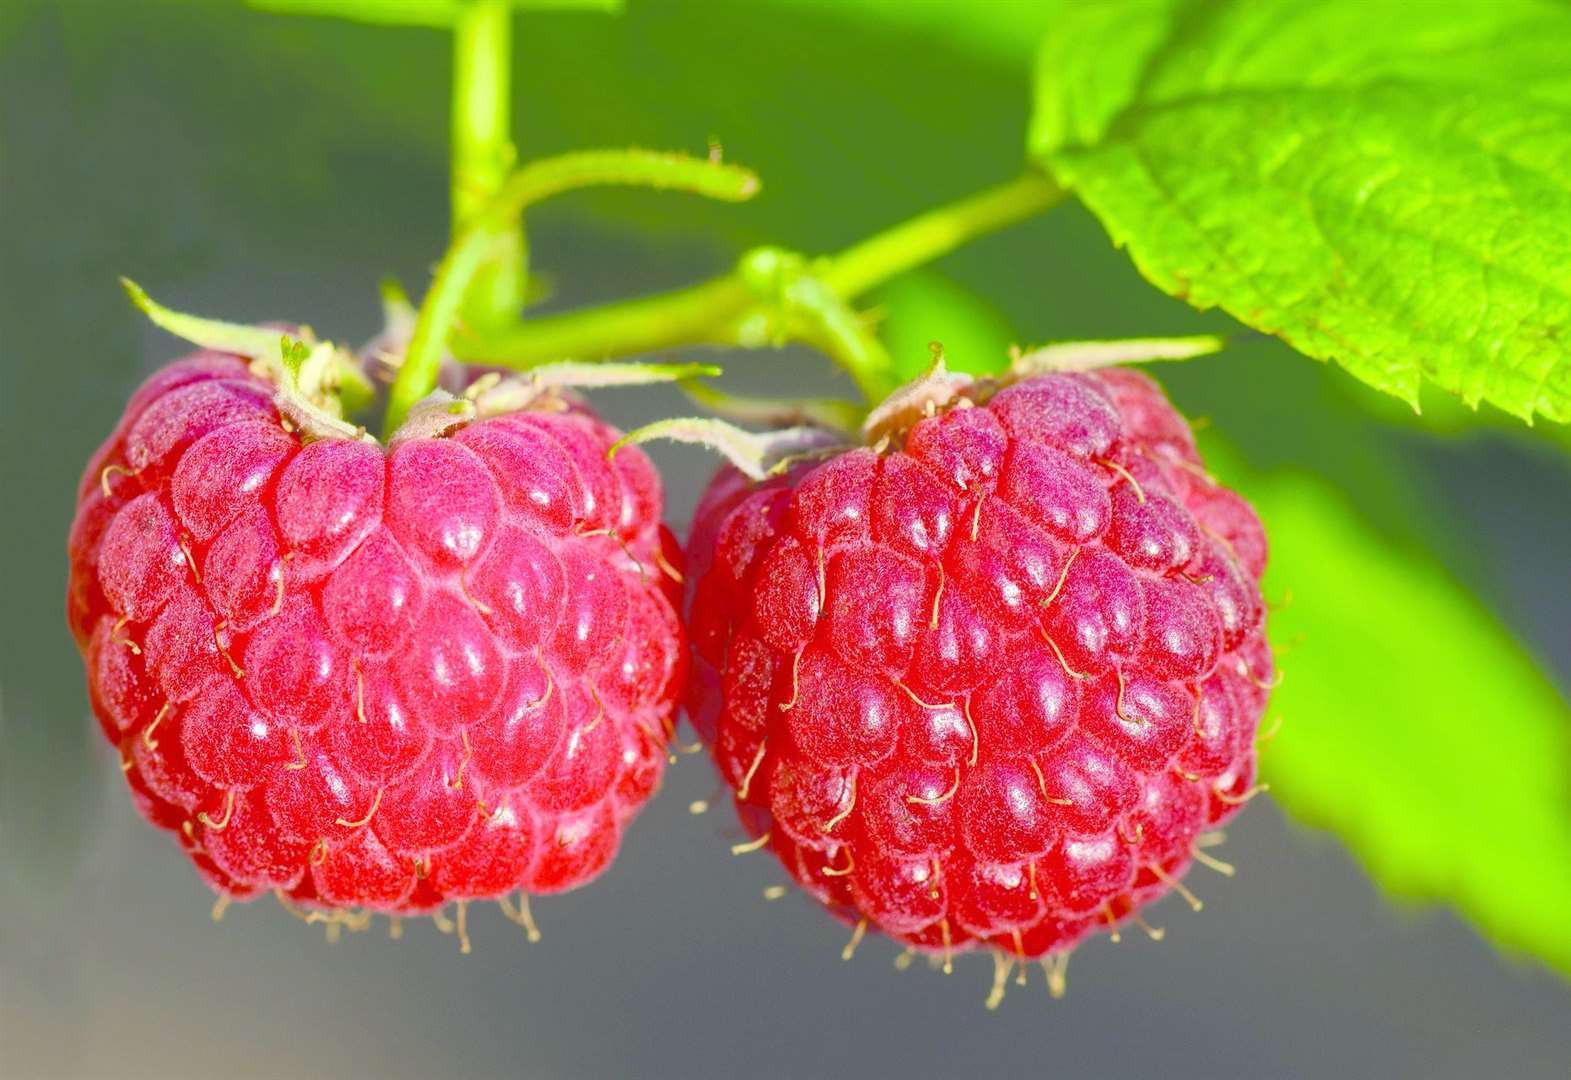 Time to get raspberries in